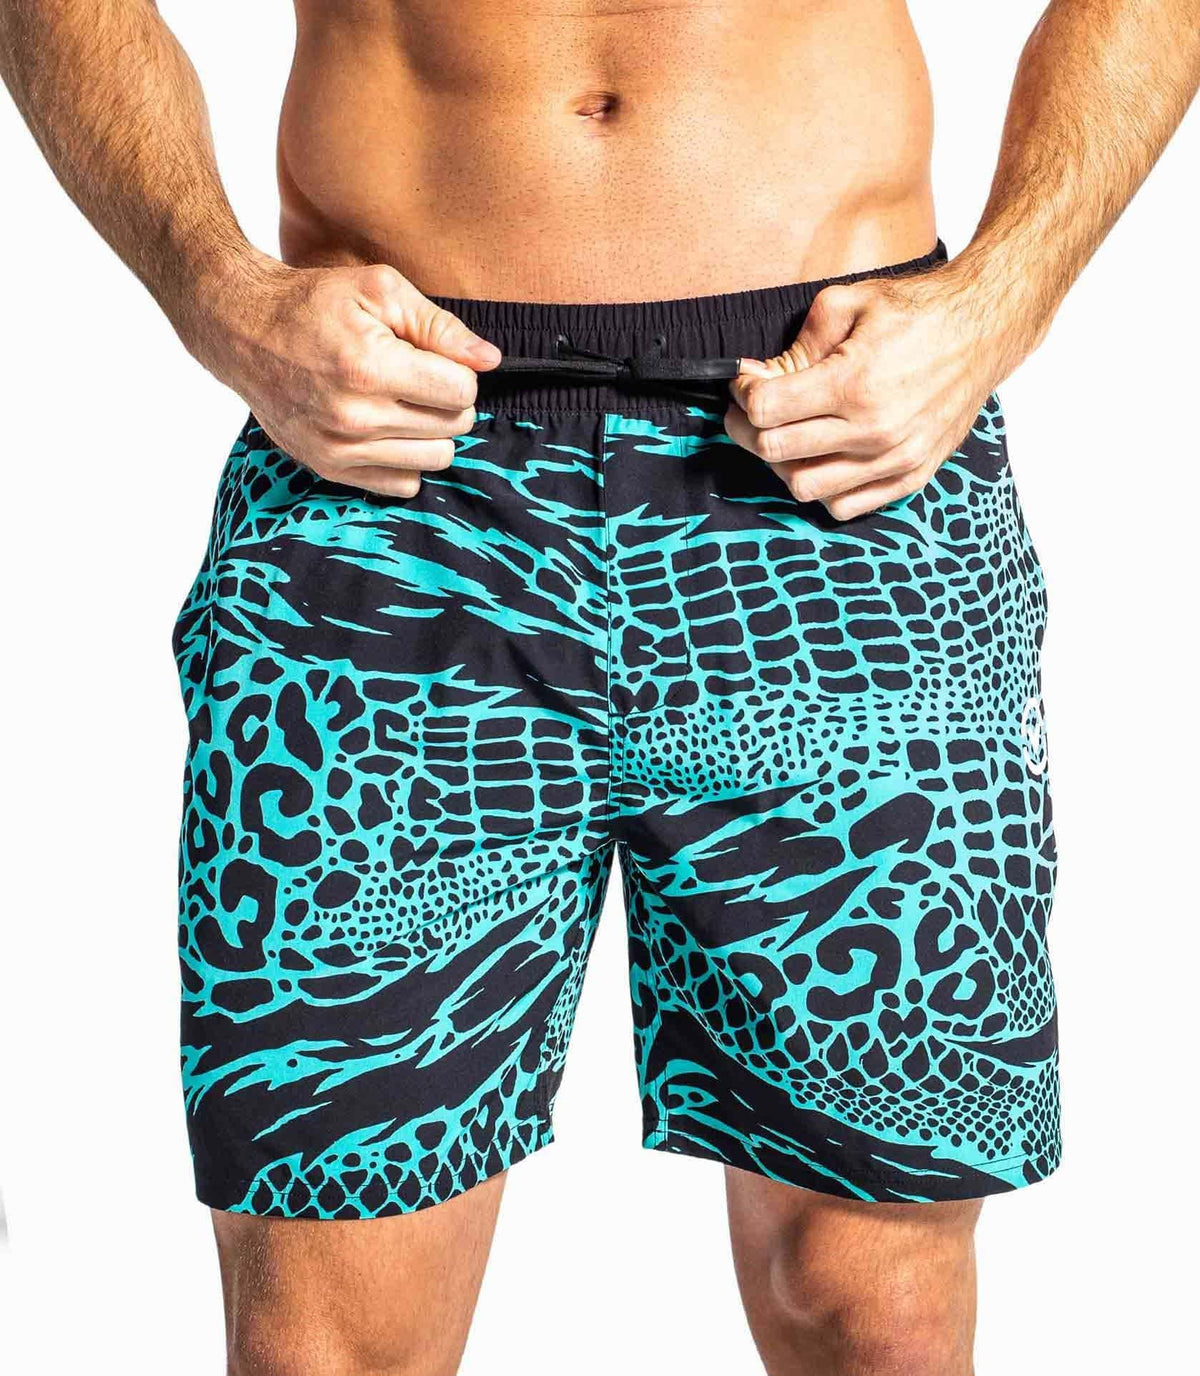 Evo II Manimal Performance Shorts